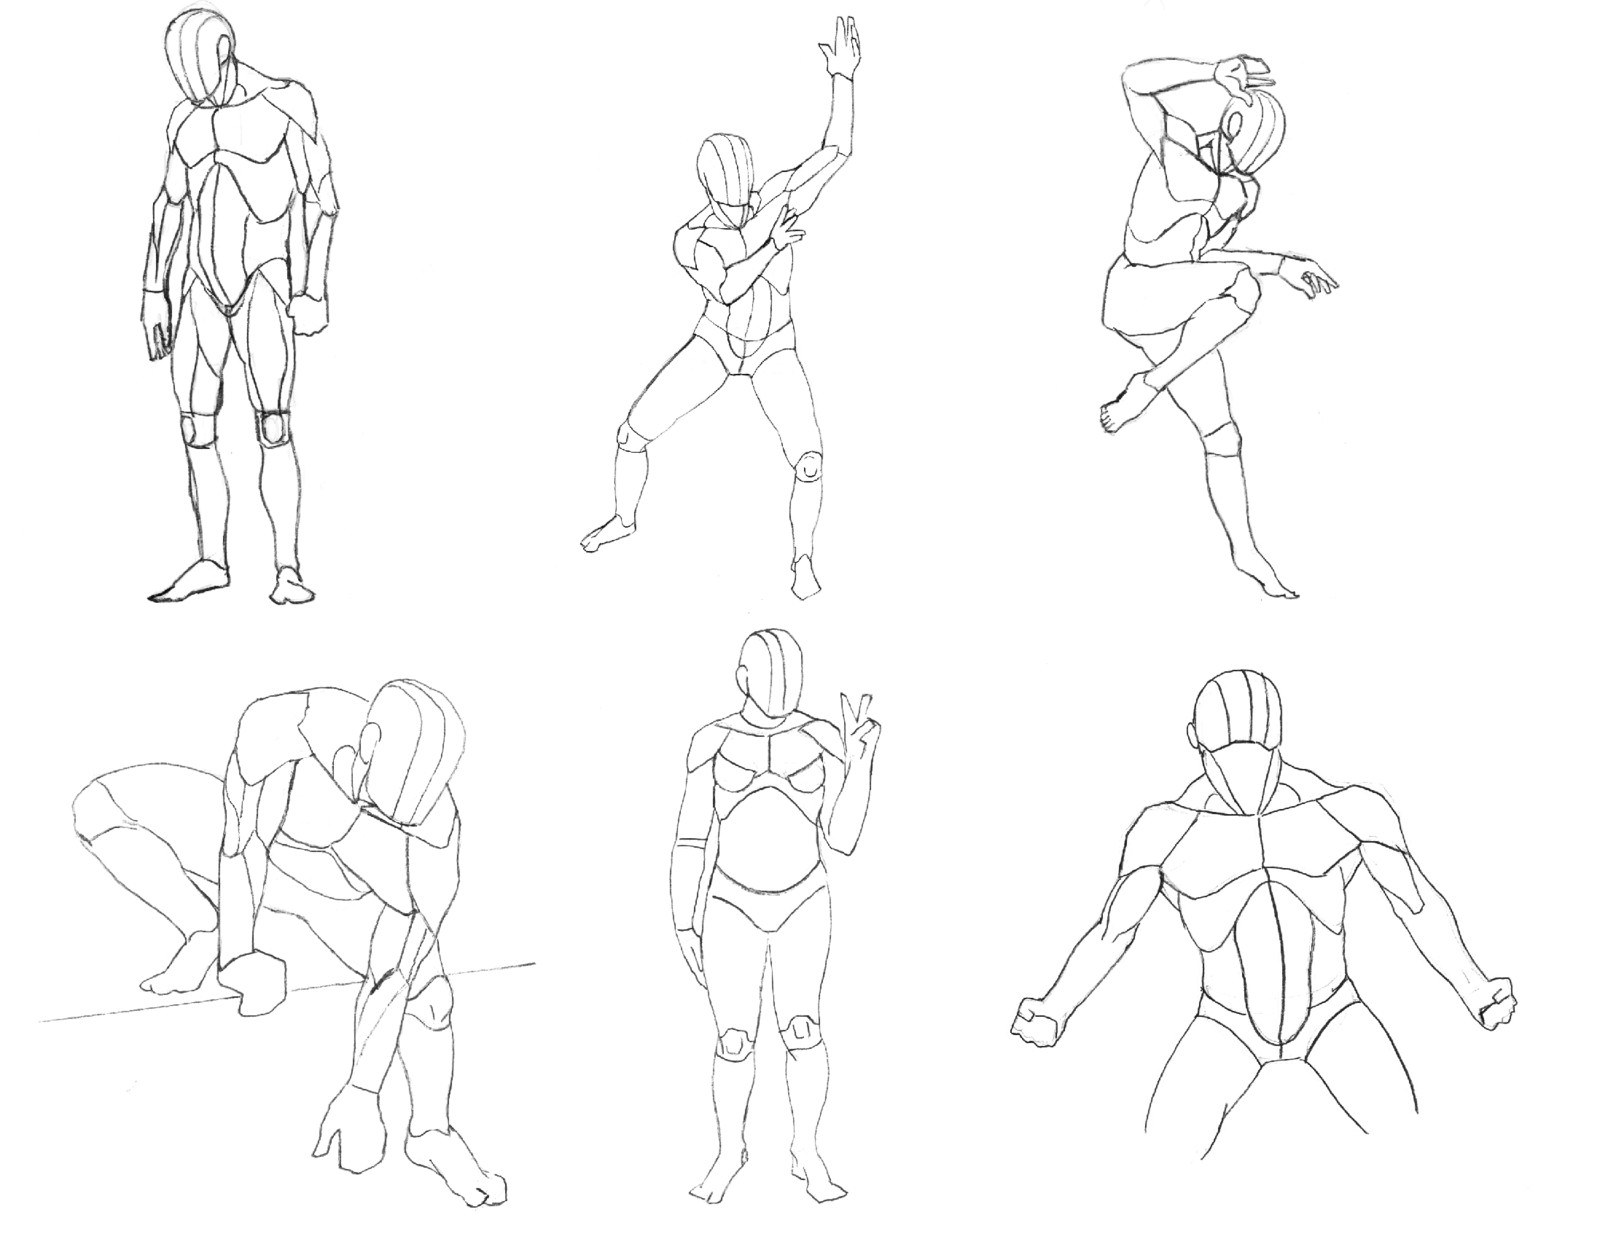 Different poses with varying levels of detail for different muscle groups.